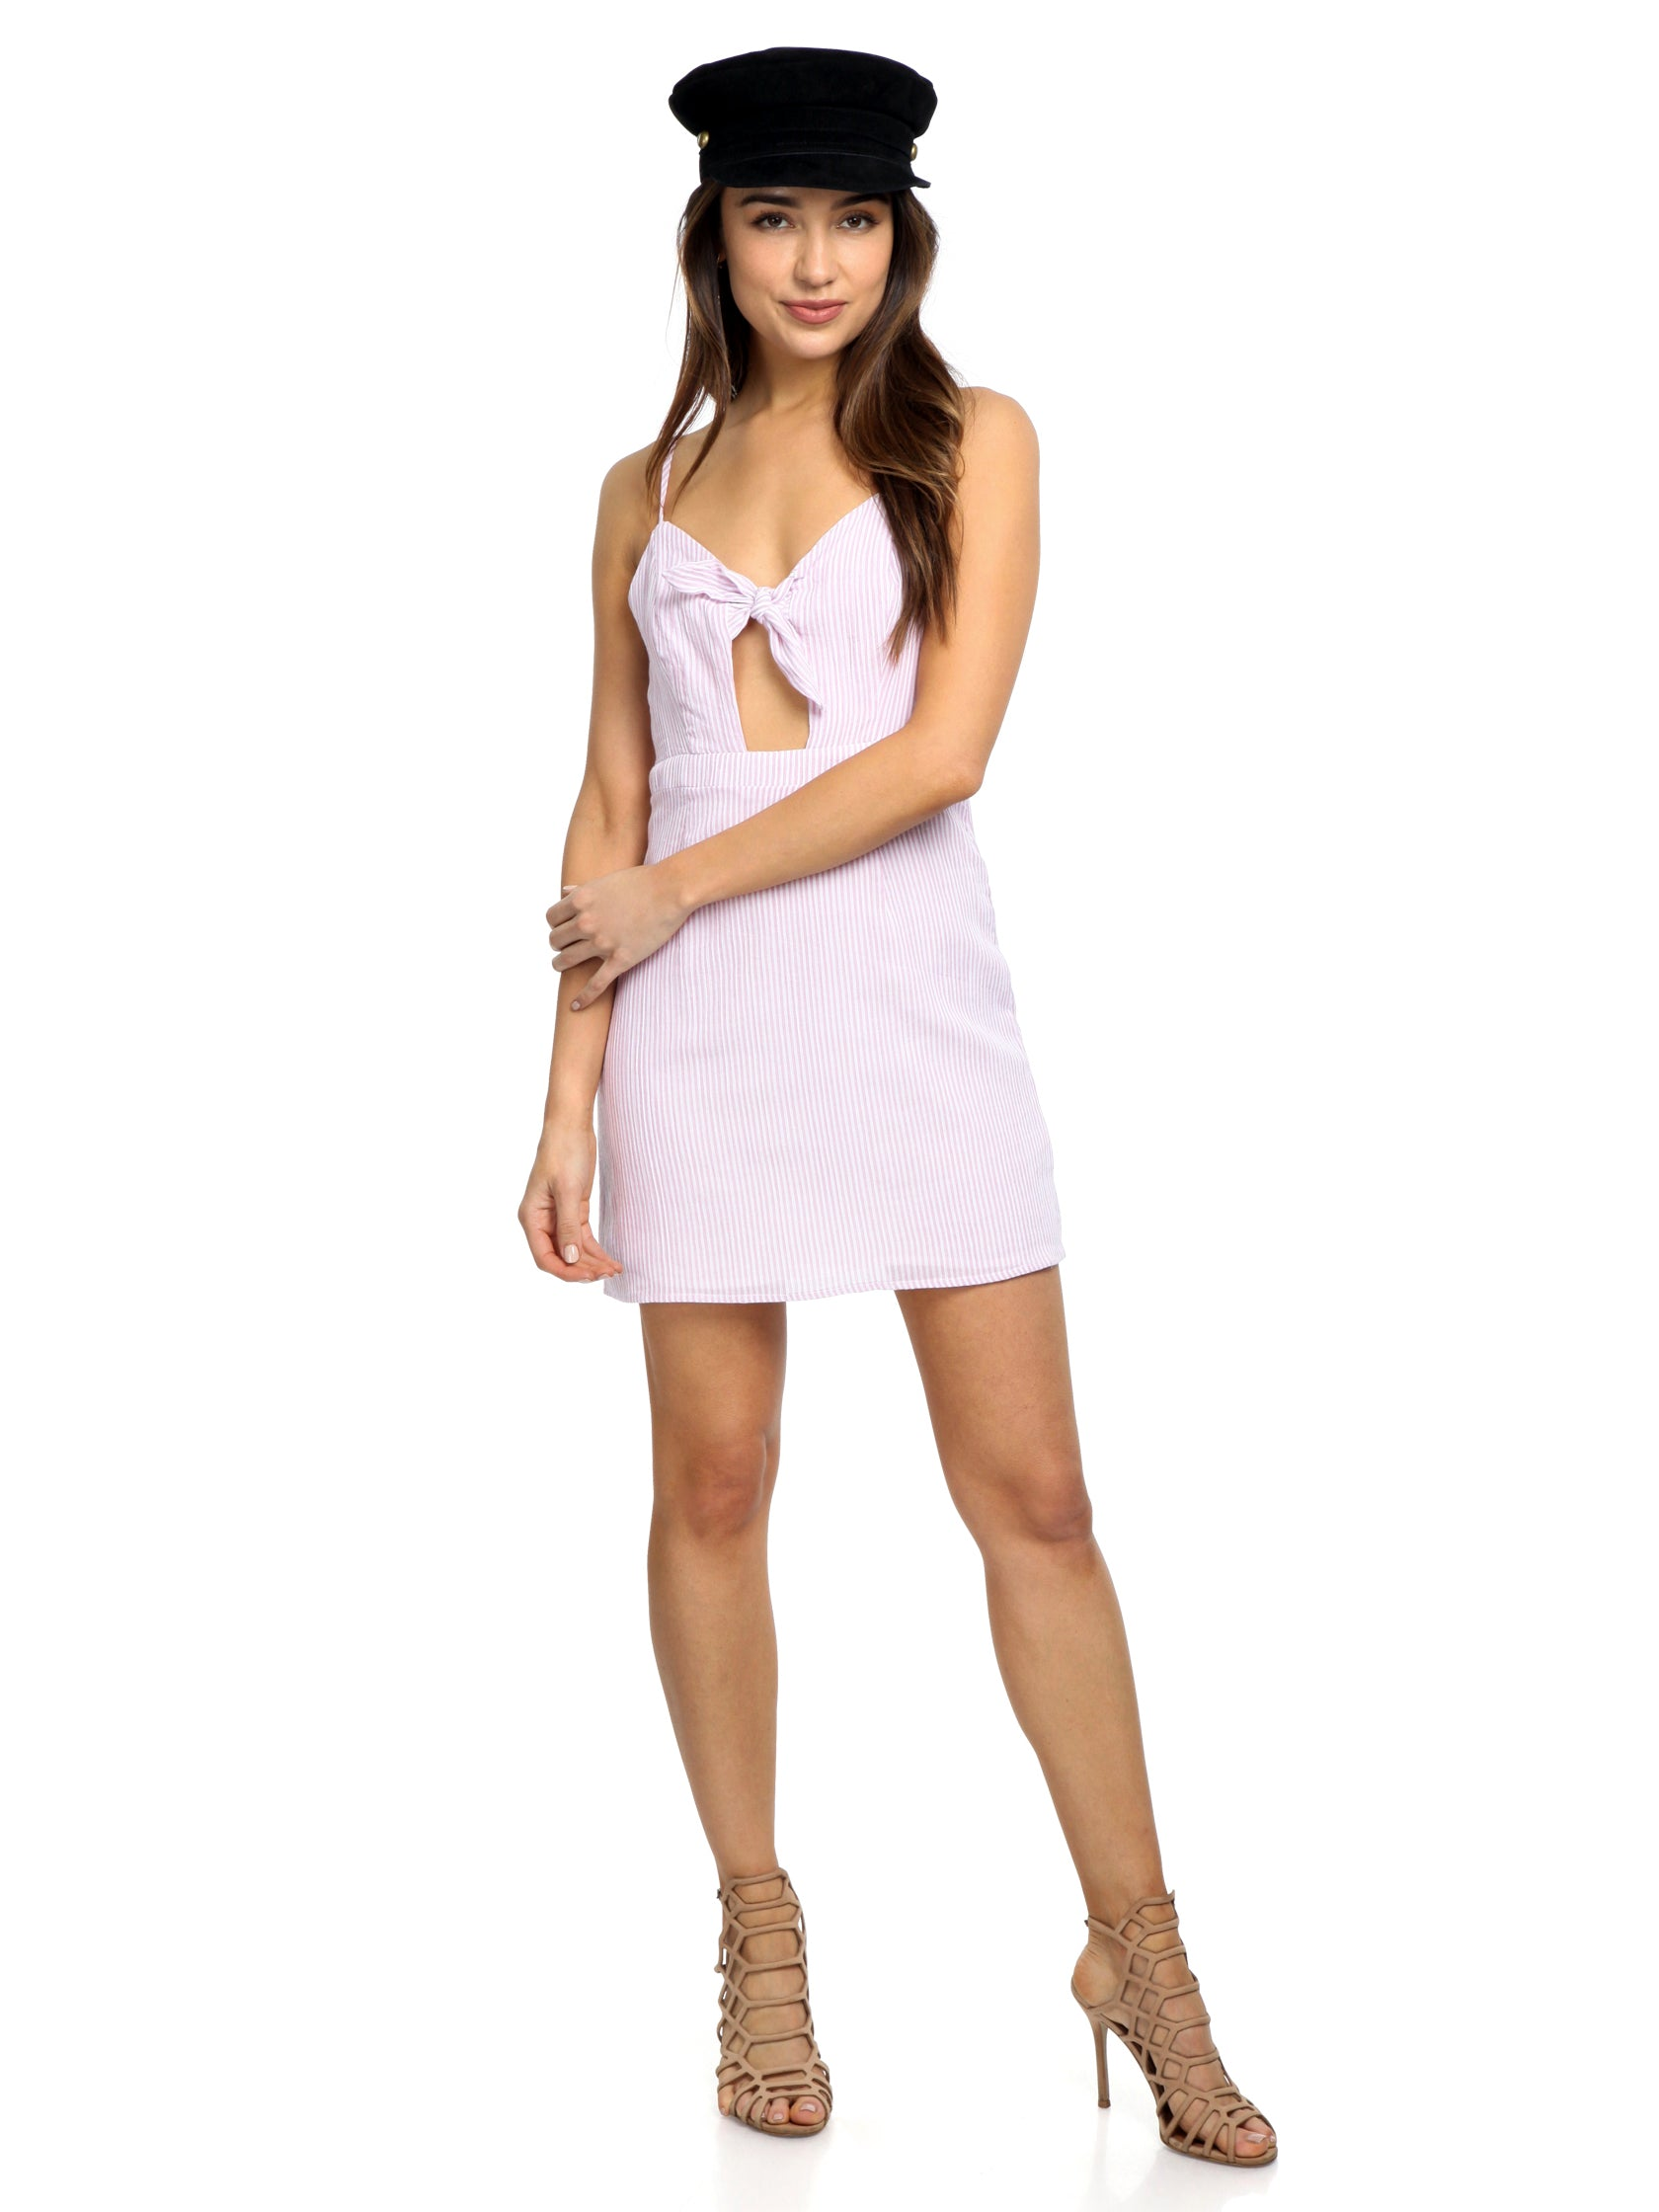 Women outfit in a dress rental from FashionPass called Swept Away Mini Dress